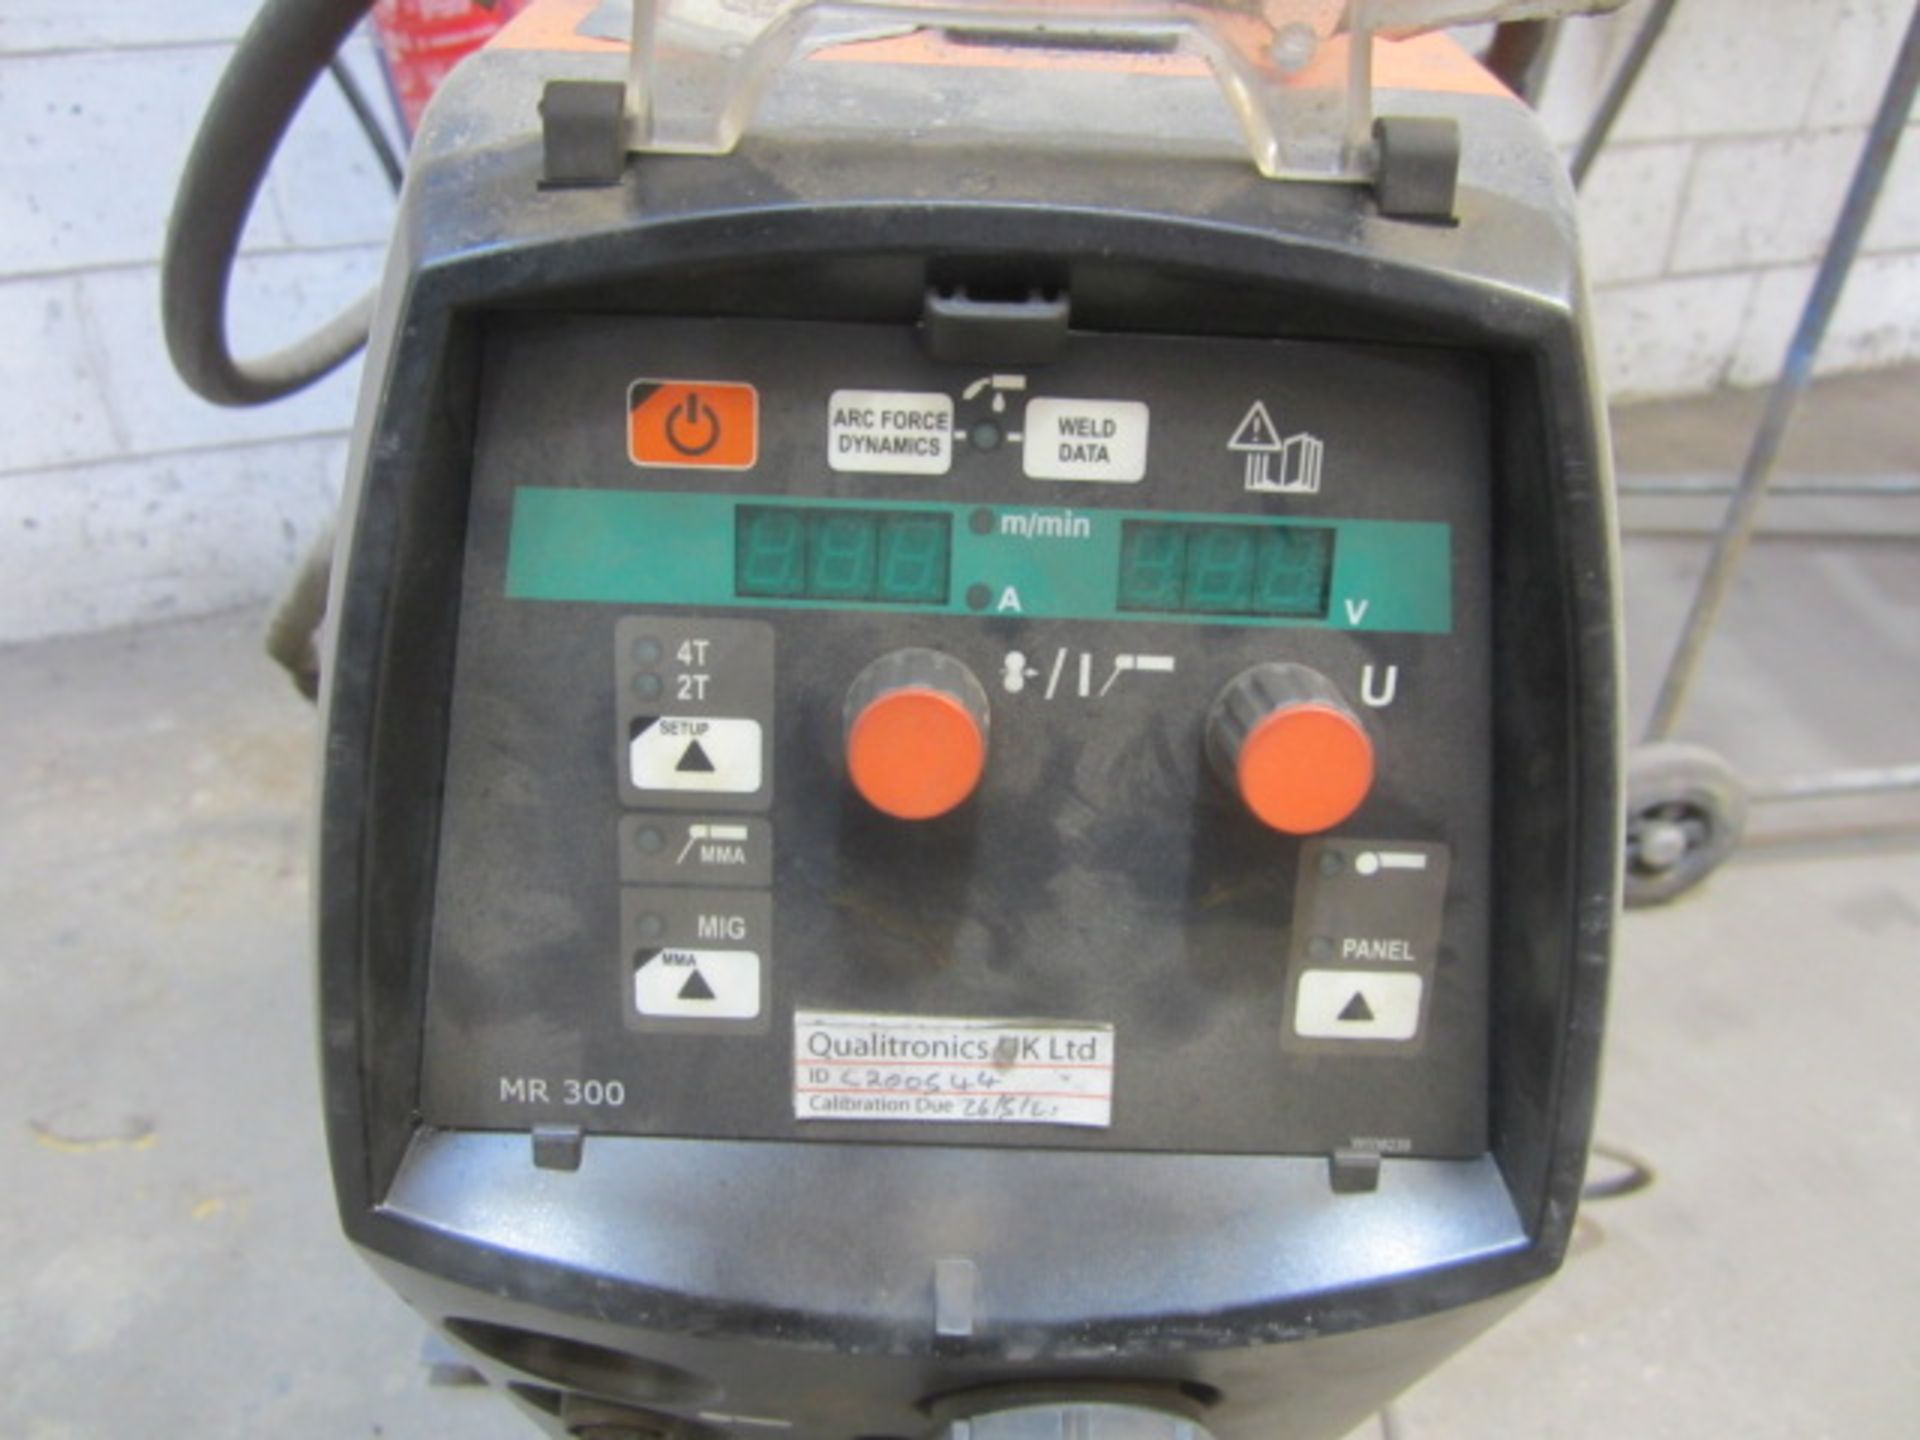 Kemppi Fast Mig M420 mig welder, serial no. 2694679, with Fast Mig MXF65 wire feeder, serial no. - Image 3 of 7